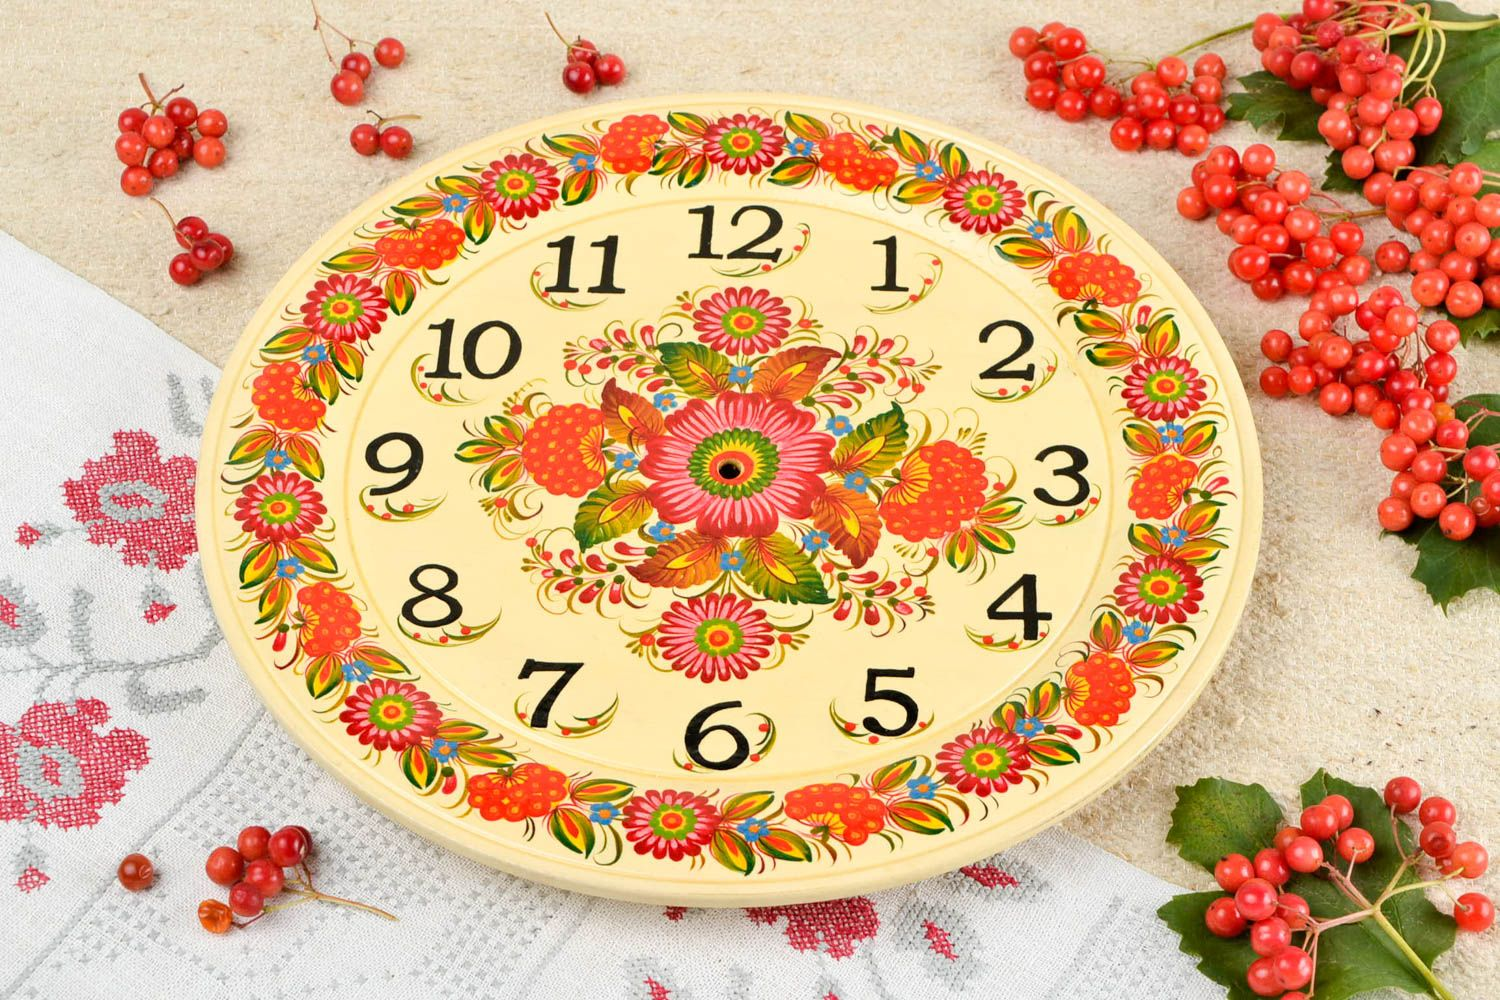 MADEHEART > Handmade wooden blank clock face wood craft art supplies ...